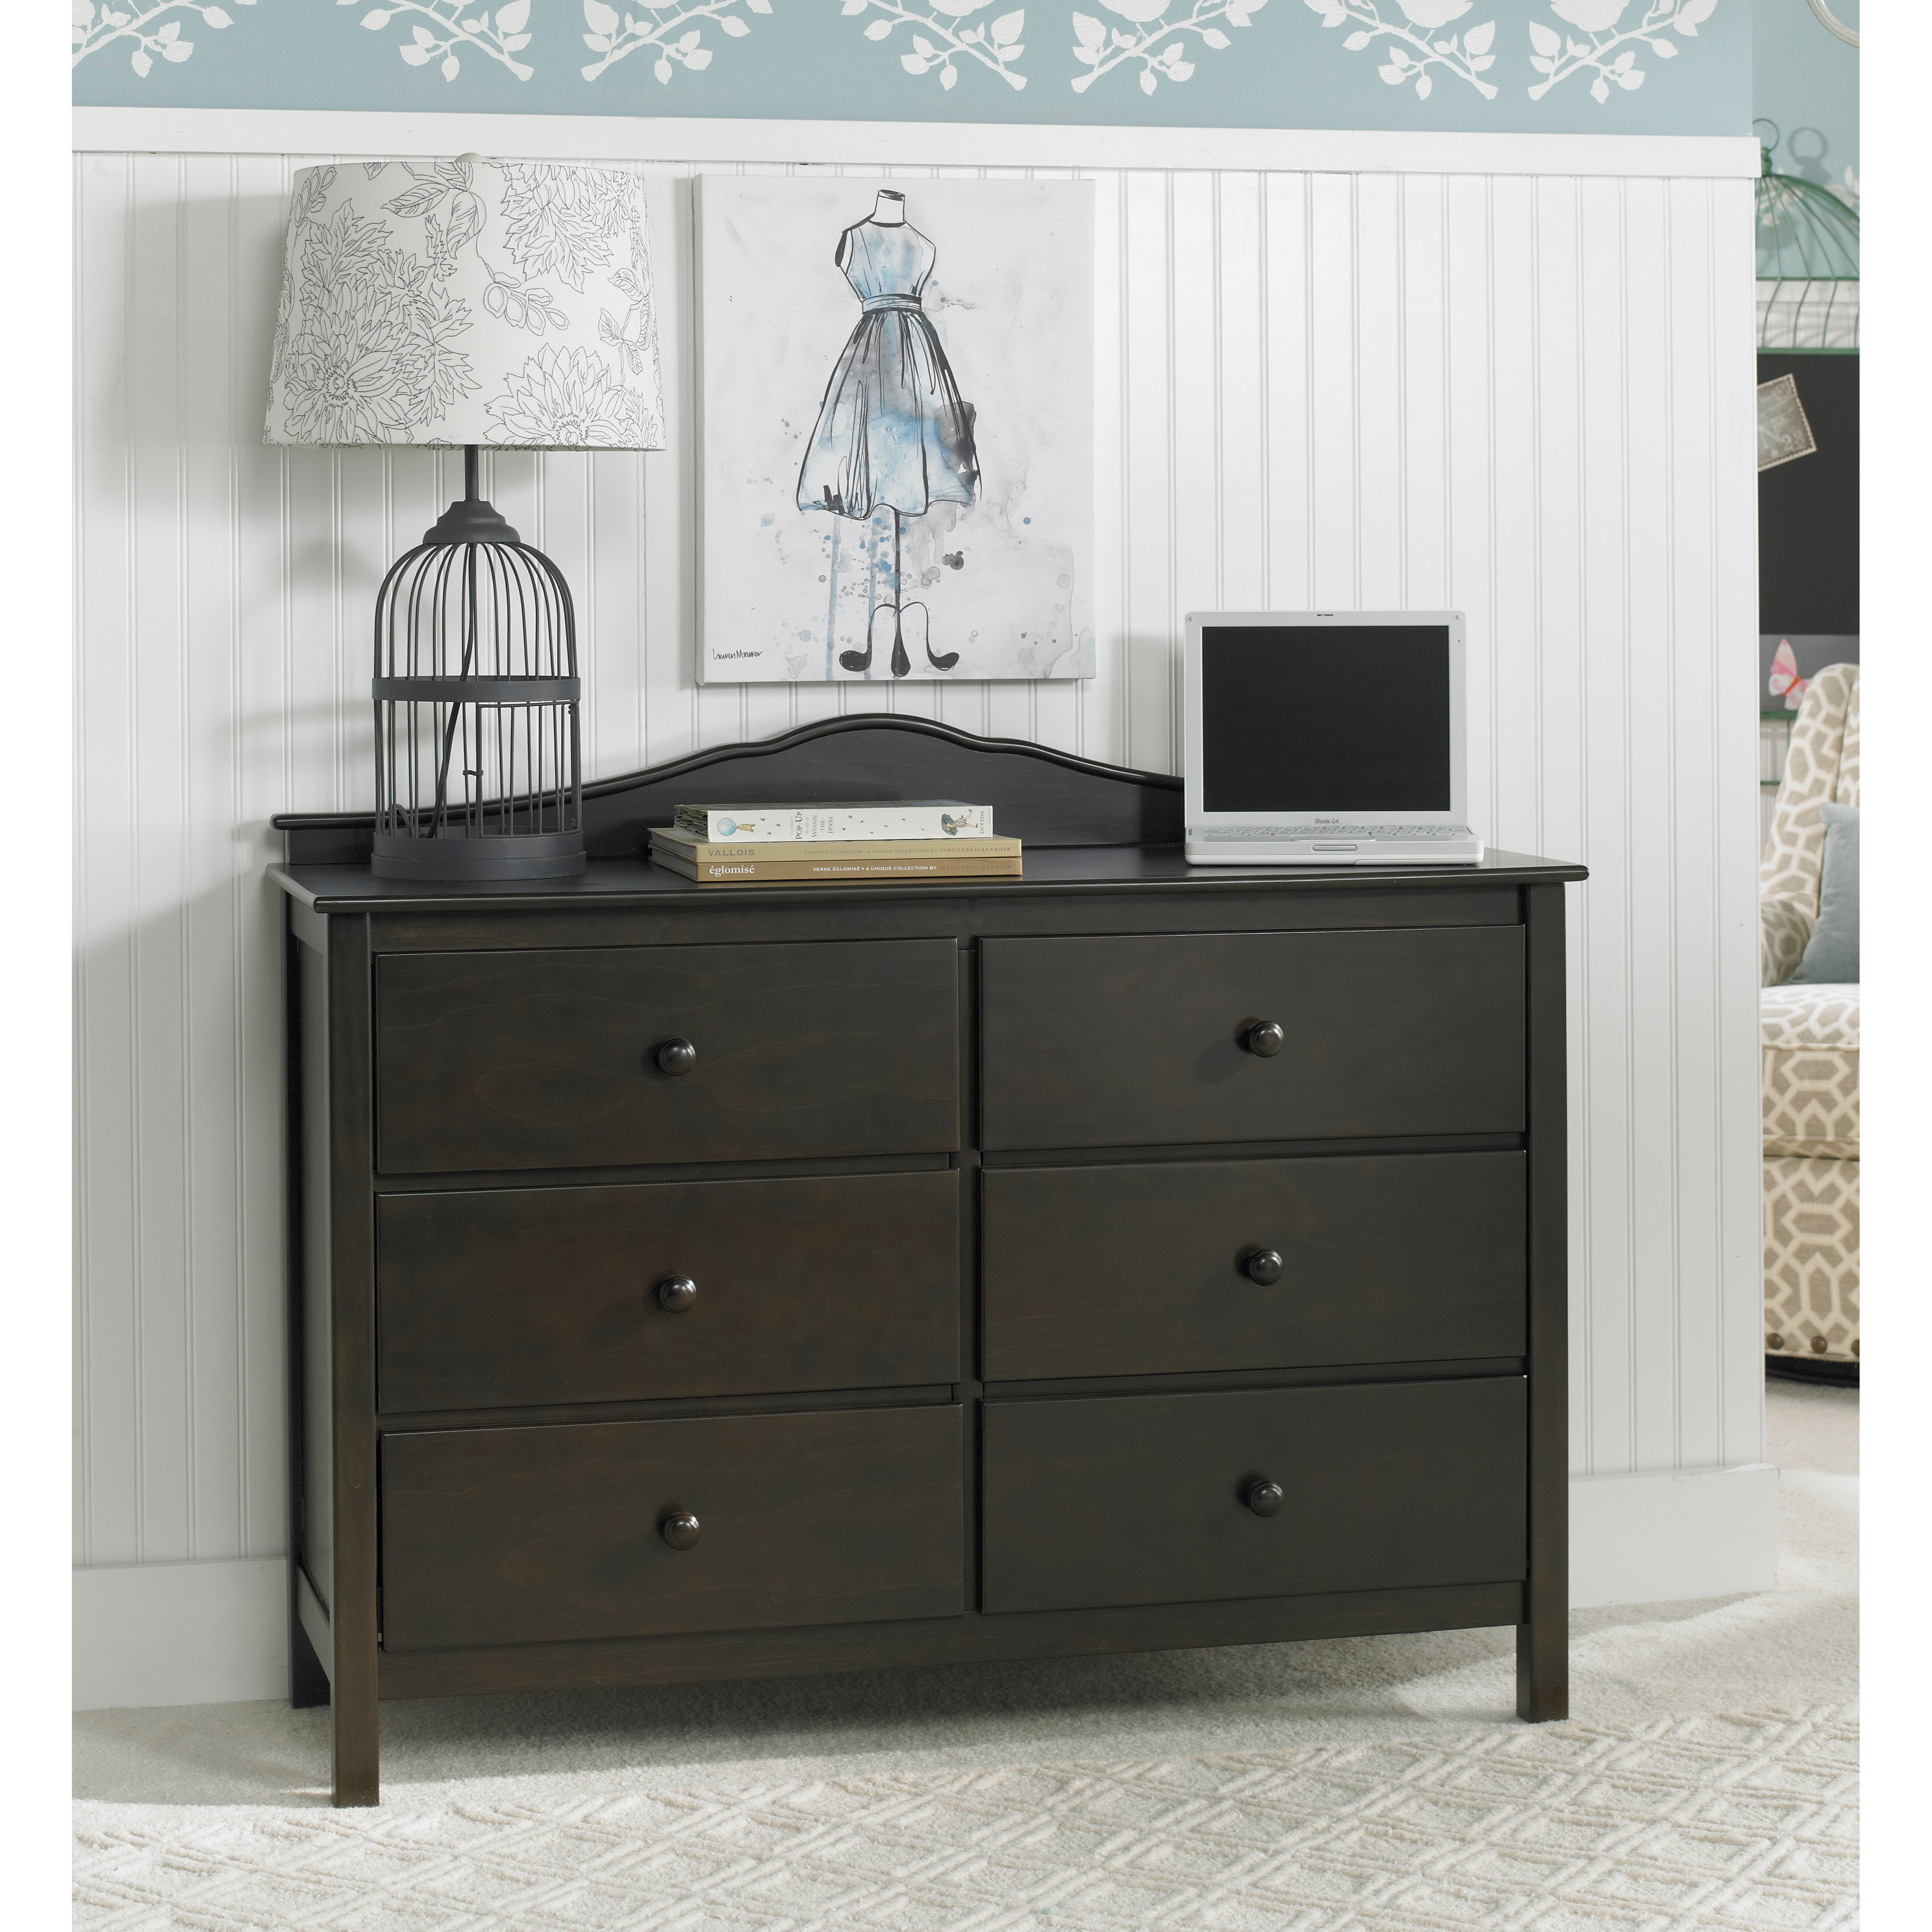 ideas davinci of incredible changing dresser files reviews u drawer styles and table bestdressers combo emily inspiration nursery kalani pic pics unbelievable